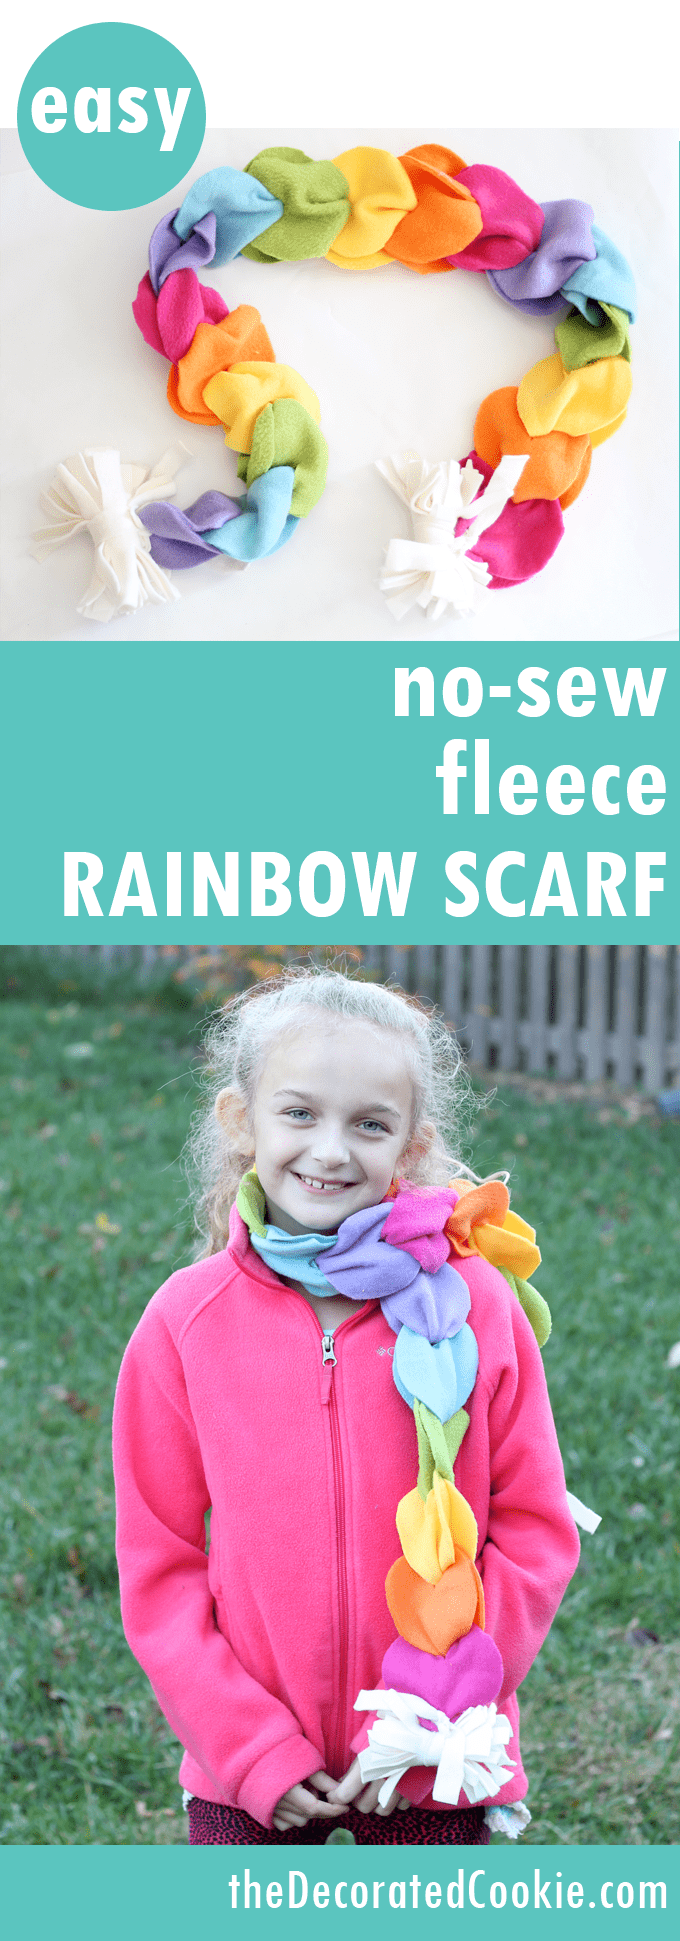 no sew rainbow scarf | DIY Fleece Fabric Craft Ideas Perfect For Cold Months | fleece fabric craft | fleece crafts